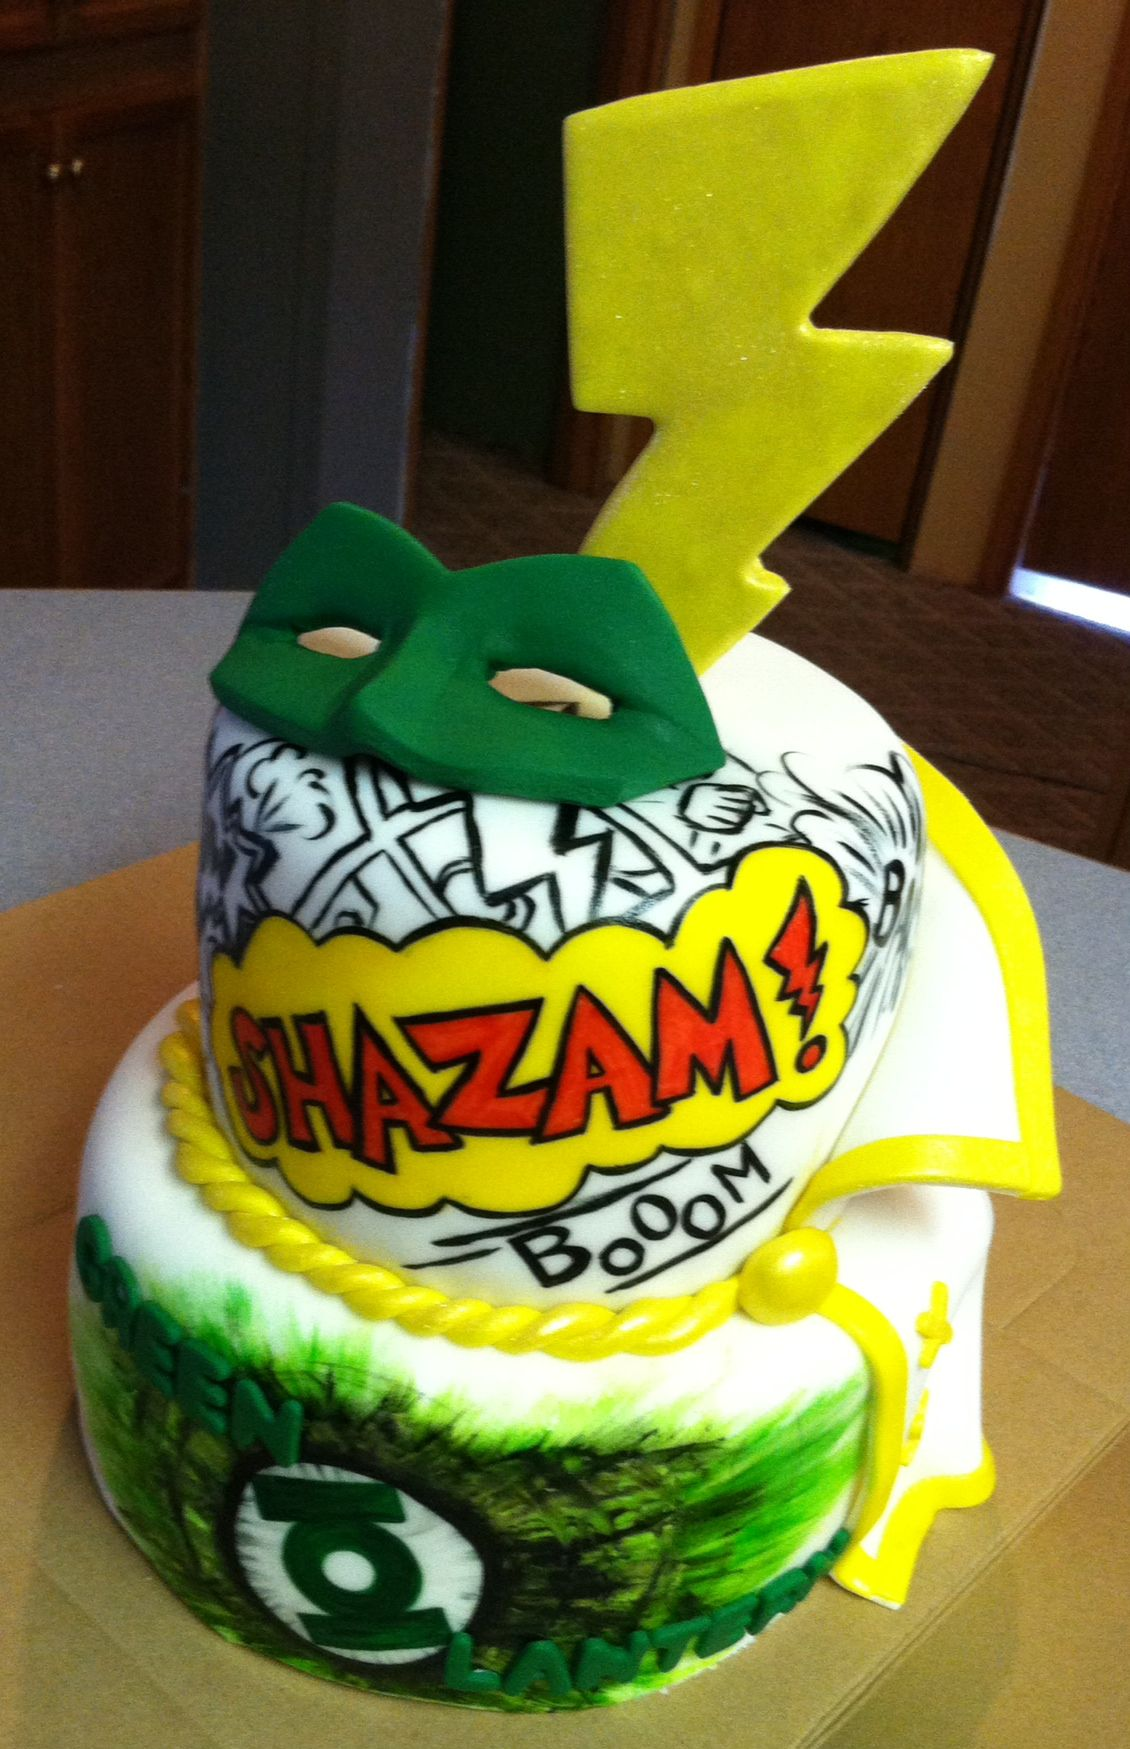 Comic Book Shazam Green Lantern Cake Alyssas Cakes In 2018